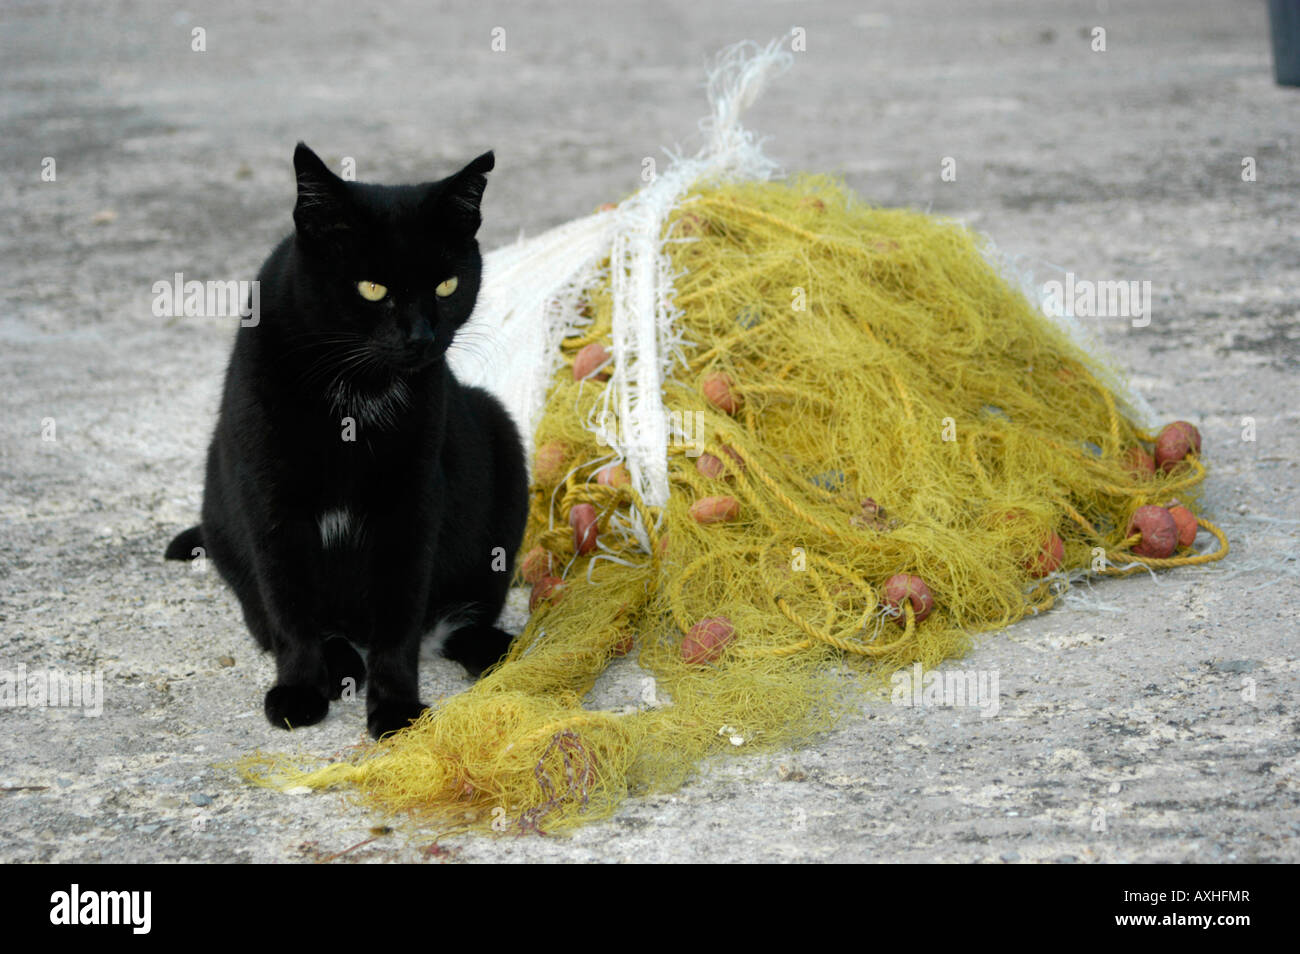 Black cat with yellow eyes sitting next to a yellow fishing net - Stock Image